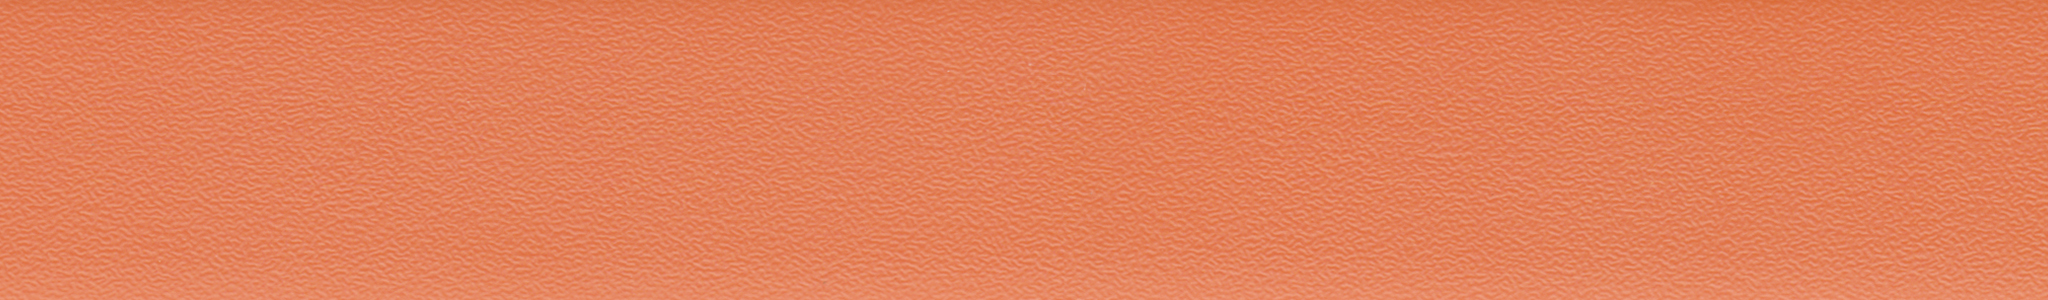 HU 14074 Chant ABS Orange Perle 101